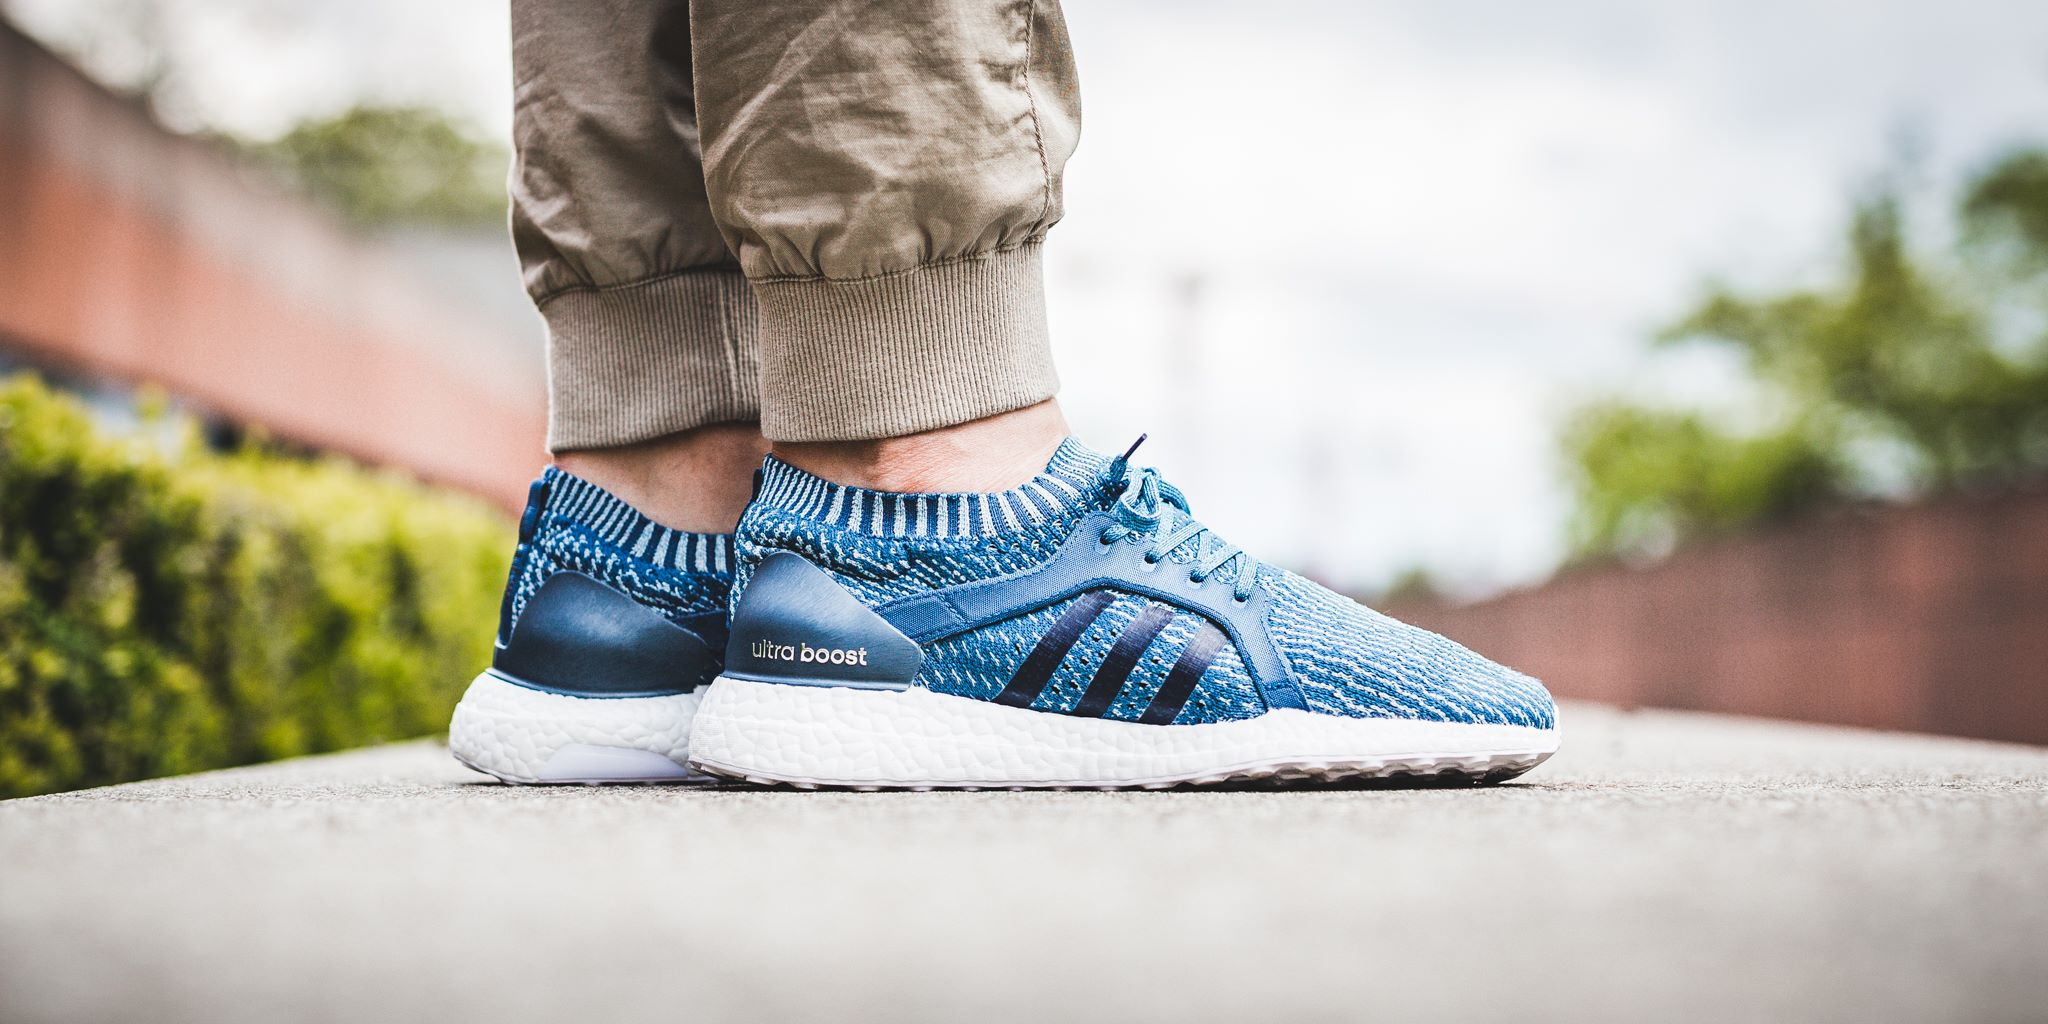 brand new 65261 d6bdc The Parley x adidas Ultra Boost X Is Also Releasing Tomorrow ...